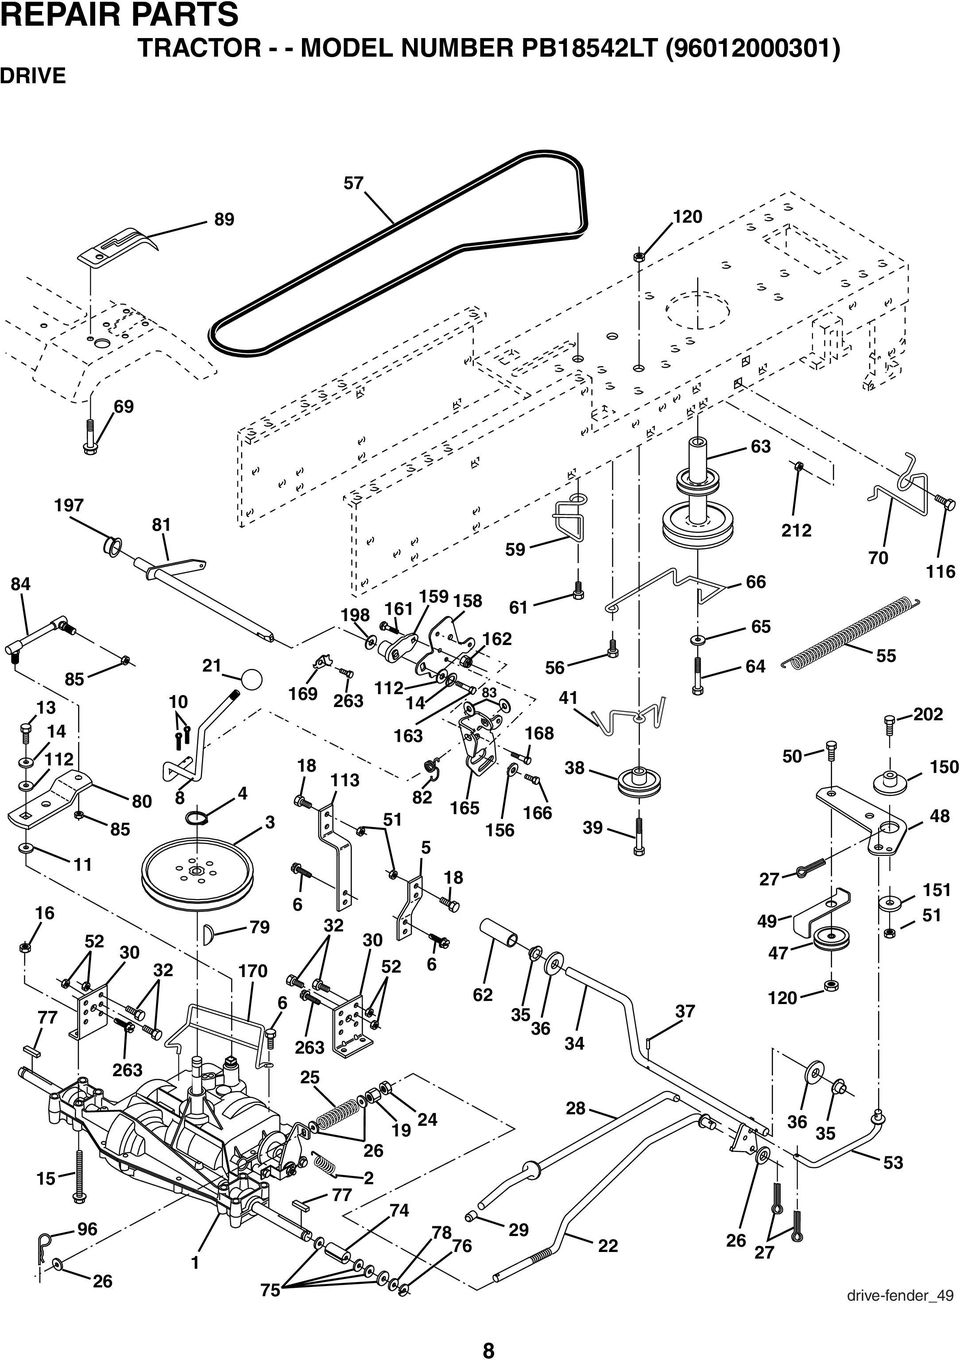 Illustrated Parts List Mfg Id Customer Catalog Number Pb18542lt Pdf Two Wire Hyster Alternator Wiring Diagram 3 4 34 37 7 47